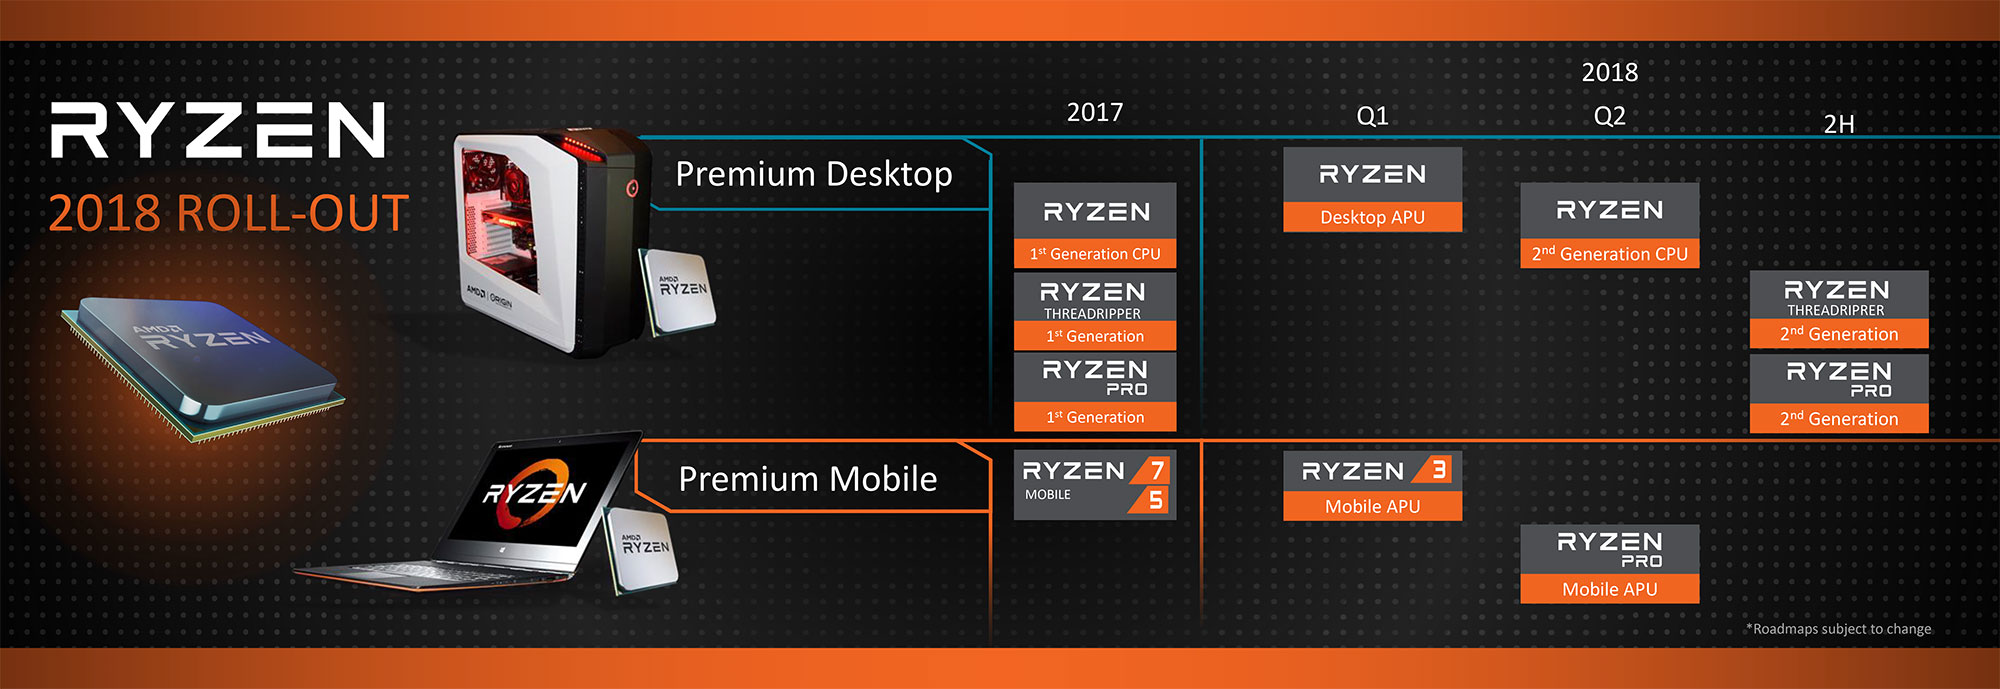 Roadmap 2018 AMD